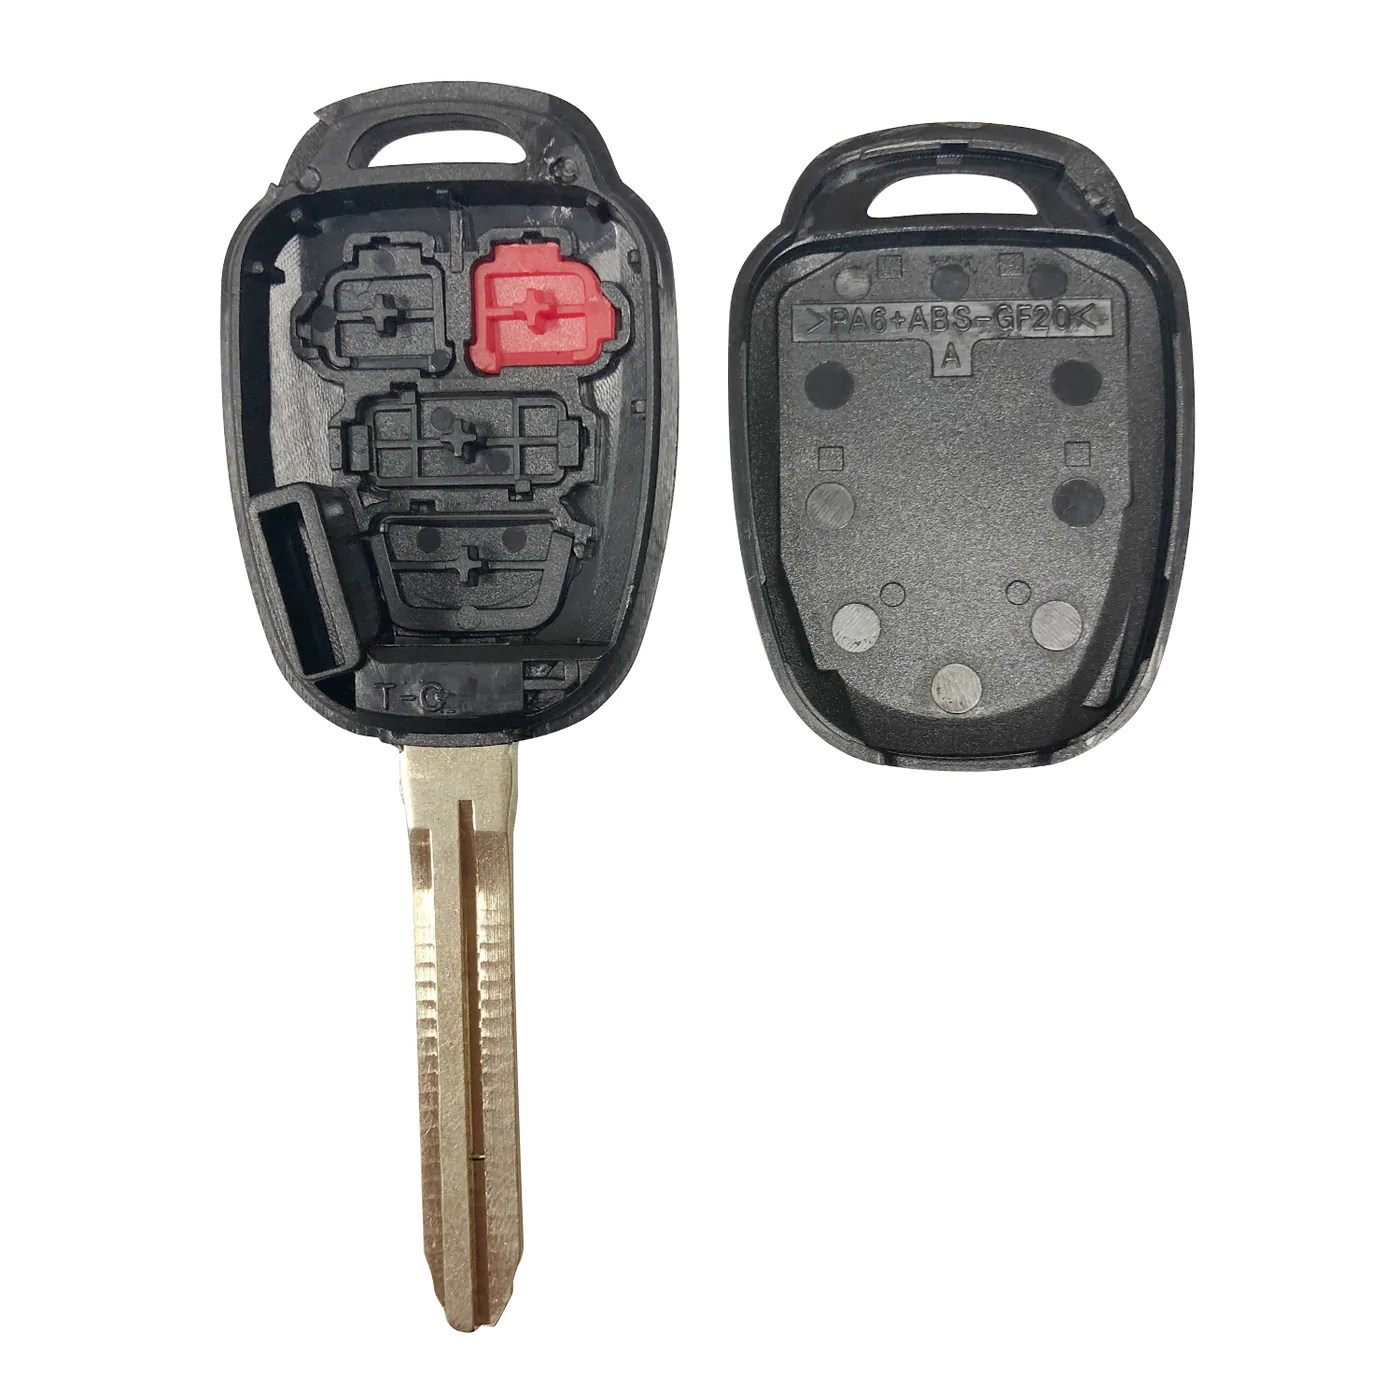 Remote Starter Kit For Toyota Vehicles Includes Bypass Fits Camry